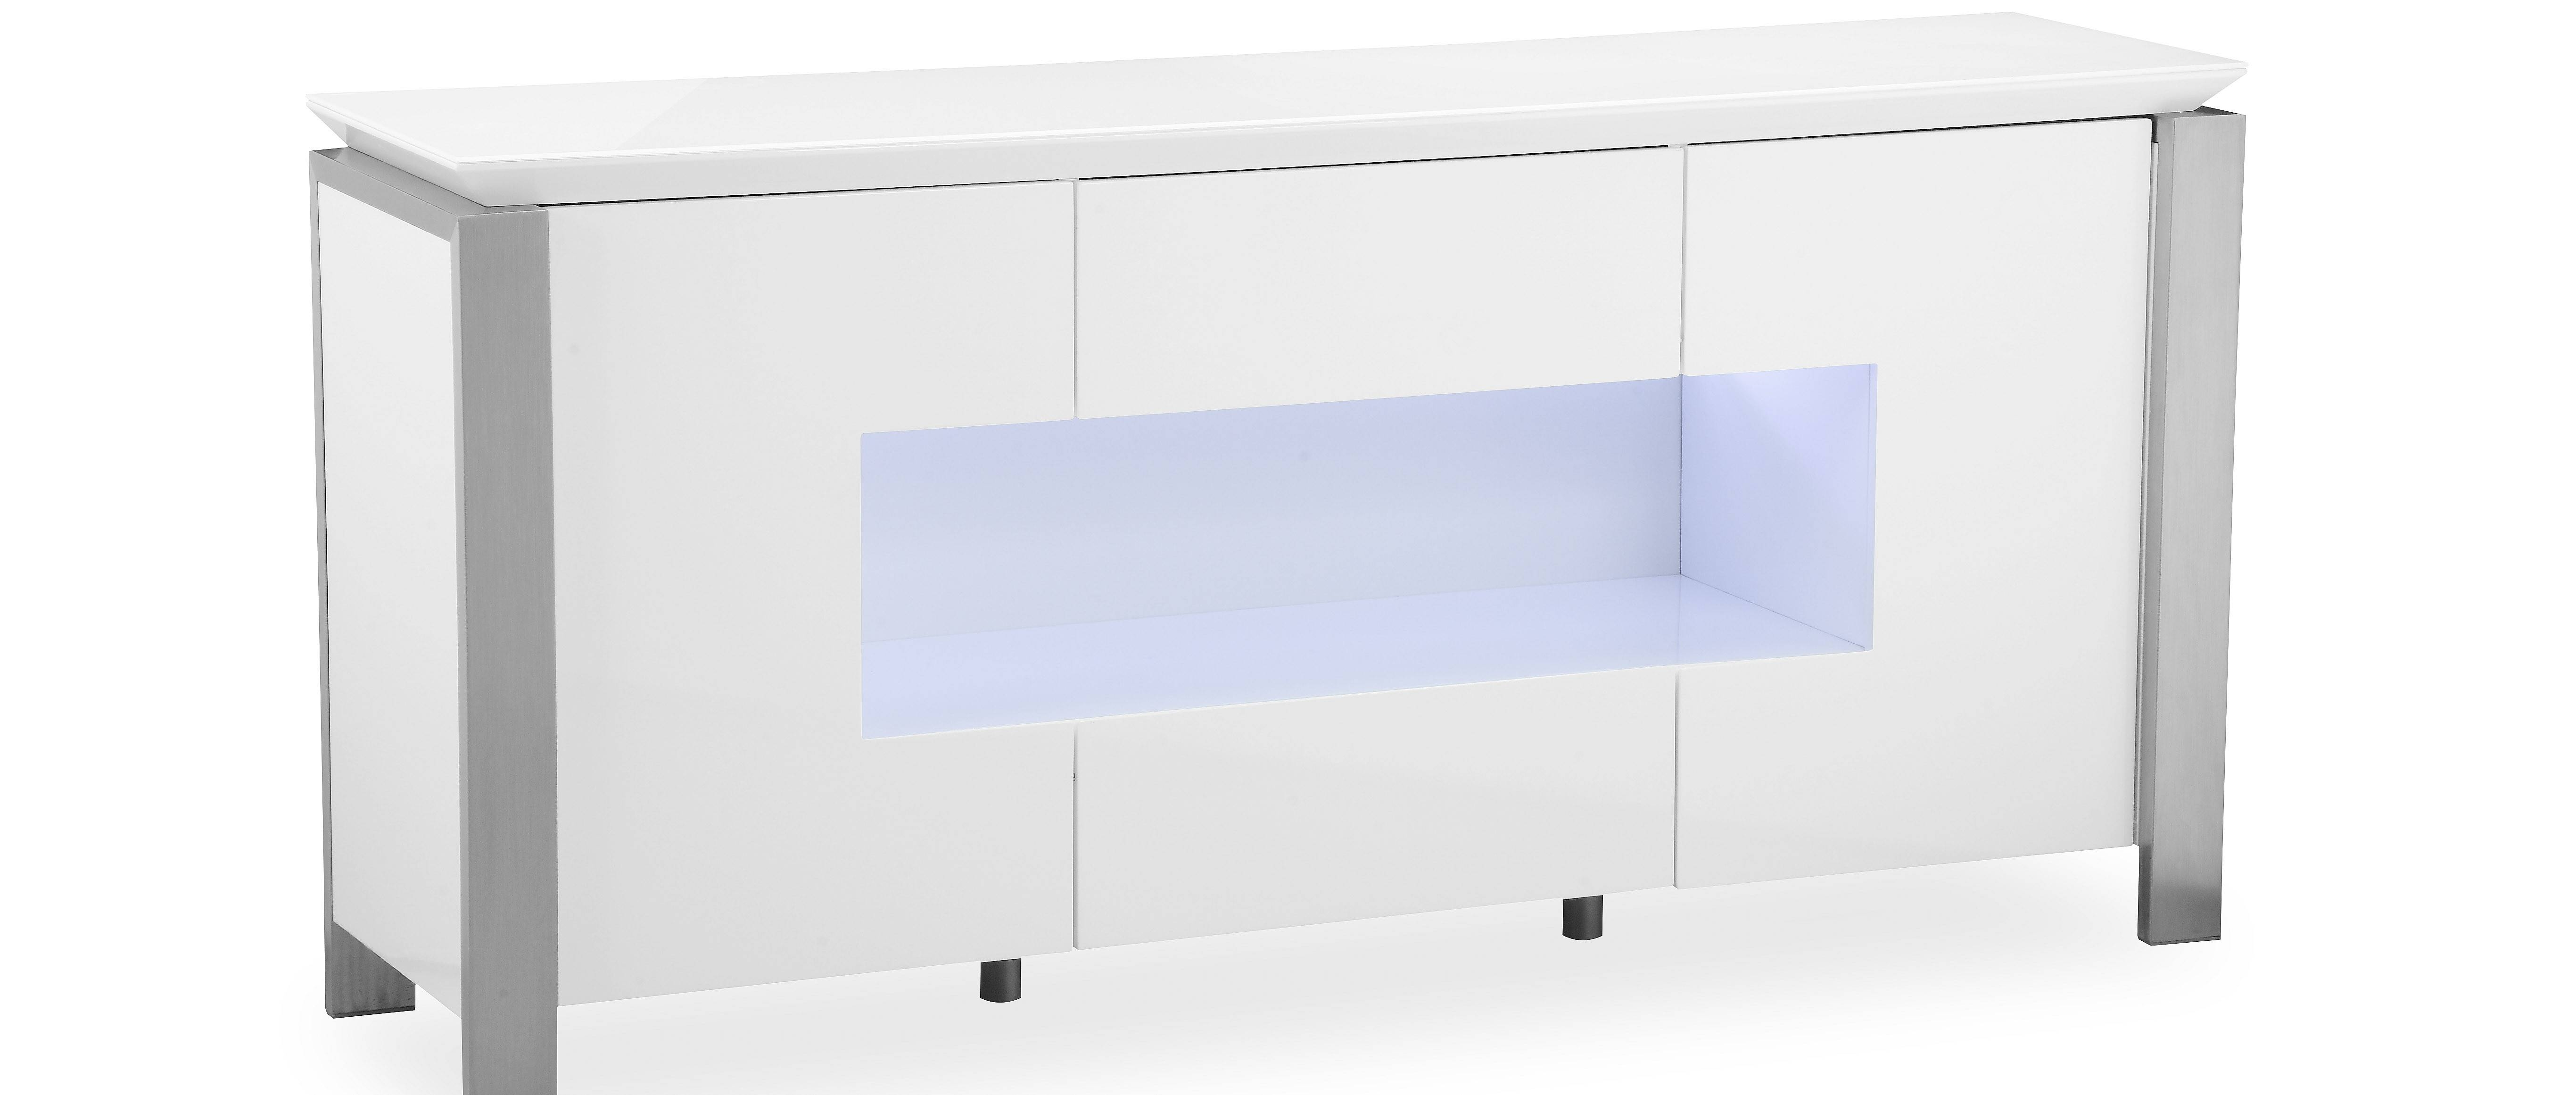 Tribeca - L.e.d. Display Sideboard - White High Gloss inside High Gloss Sideboards (Image 30 of 30)